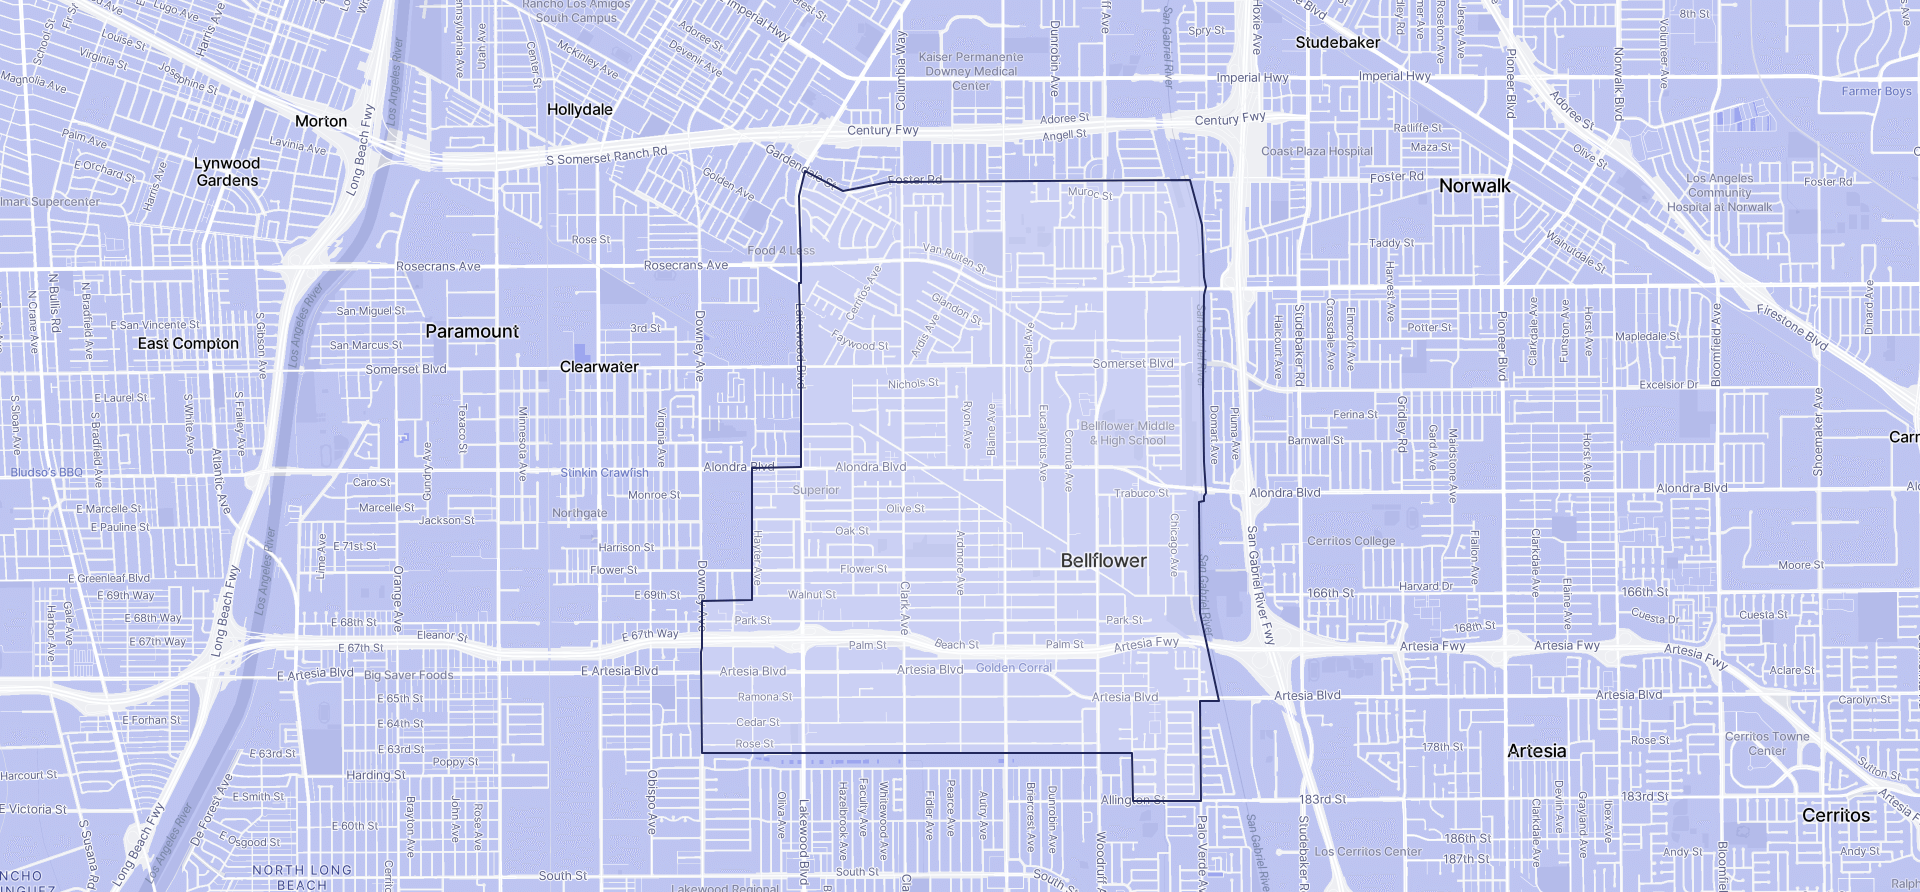 Image of Bellflower boundaries on a map.